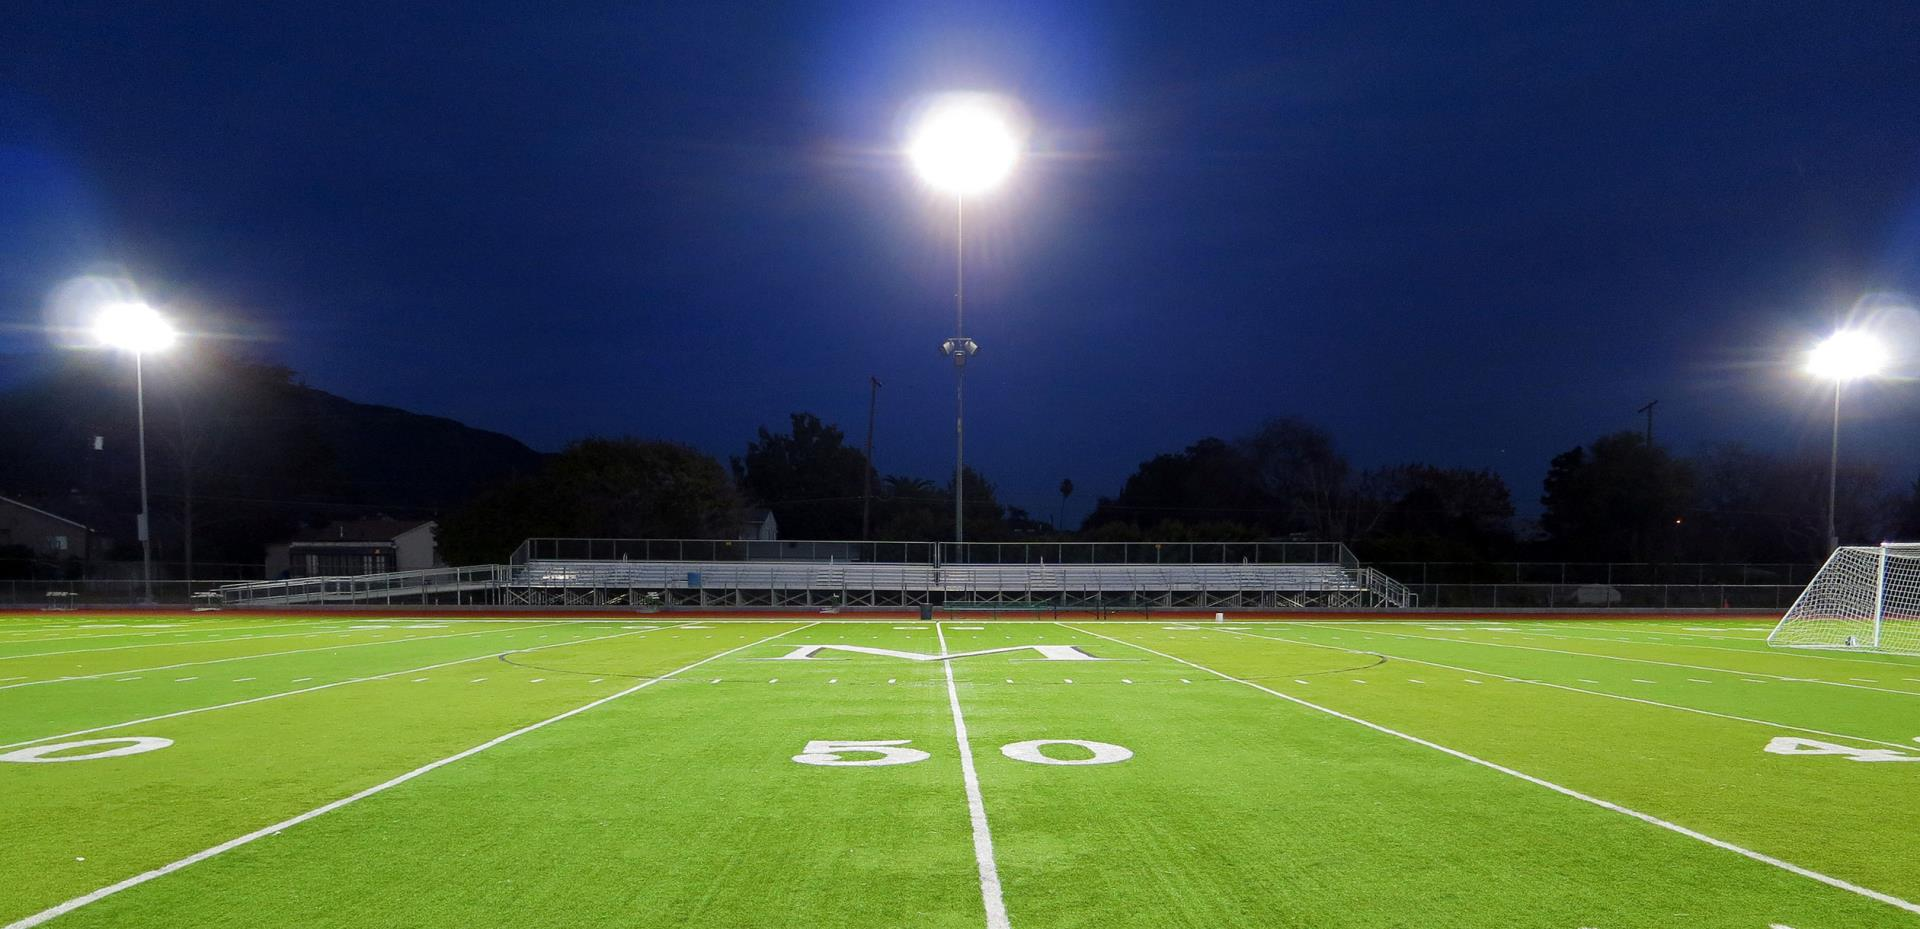 MHS football field